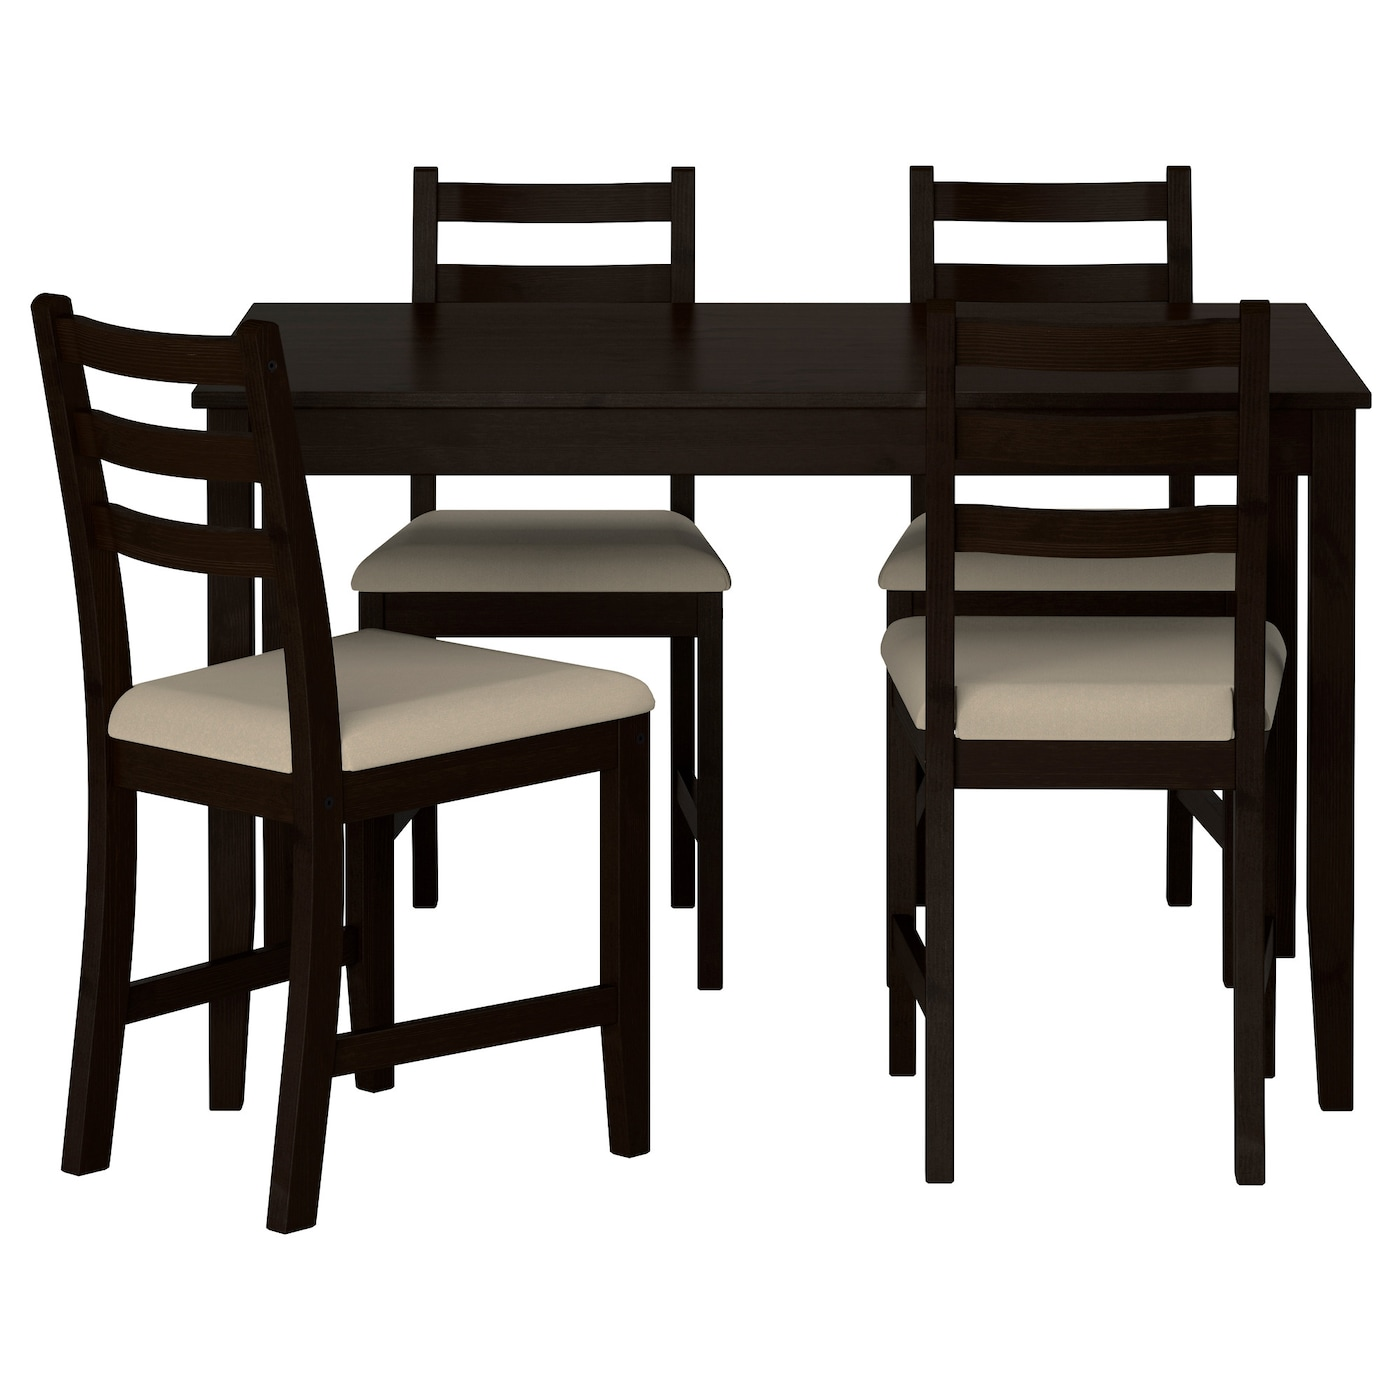 Lerhamn table and 4 chairs black brown ramna beige 118x74 for Small black table and chairs